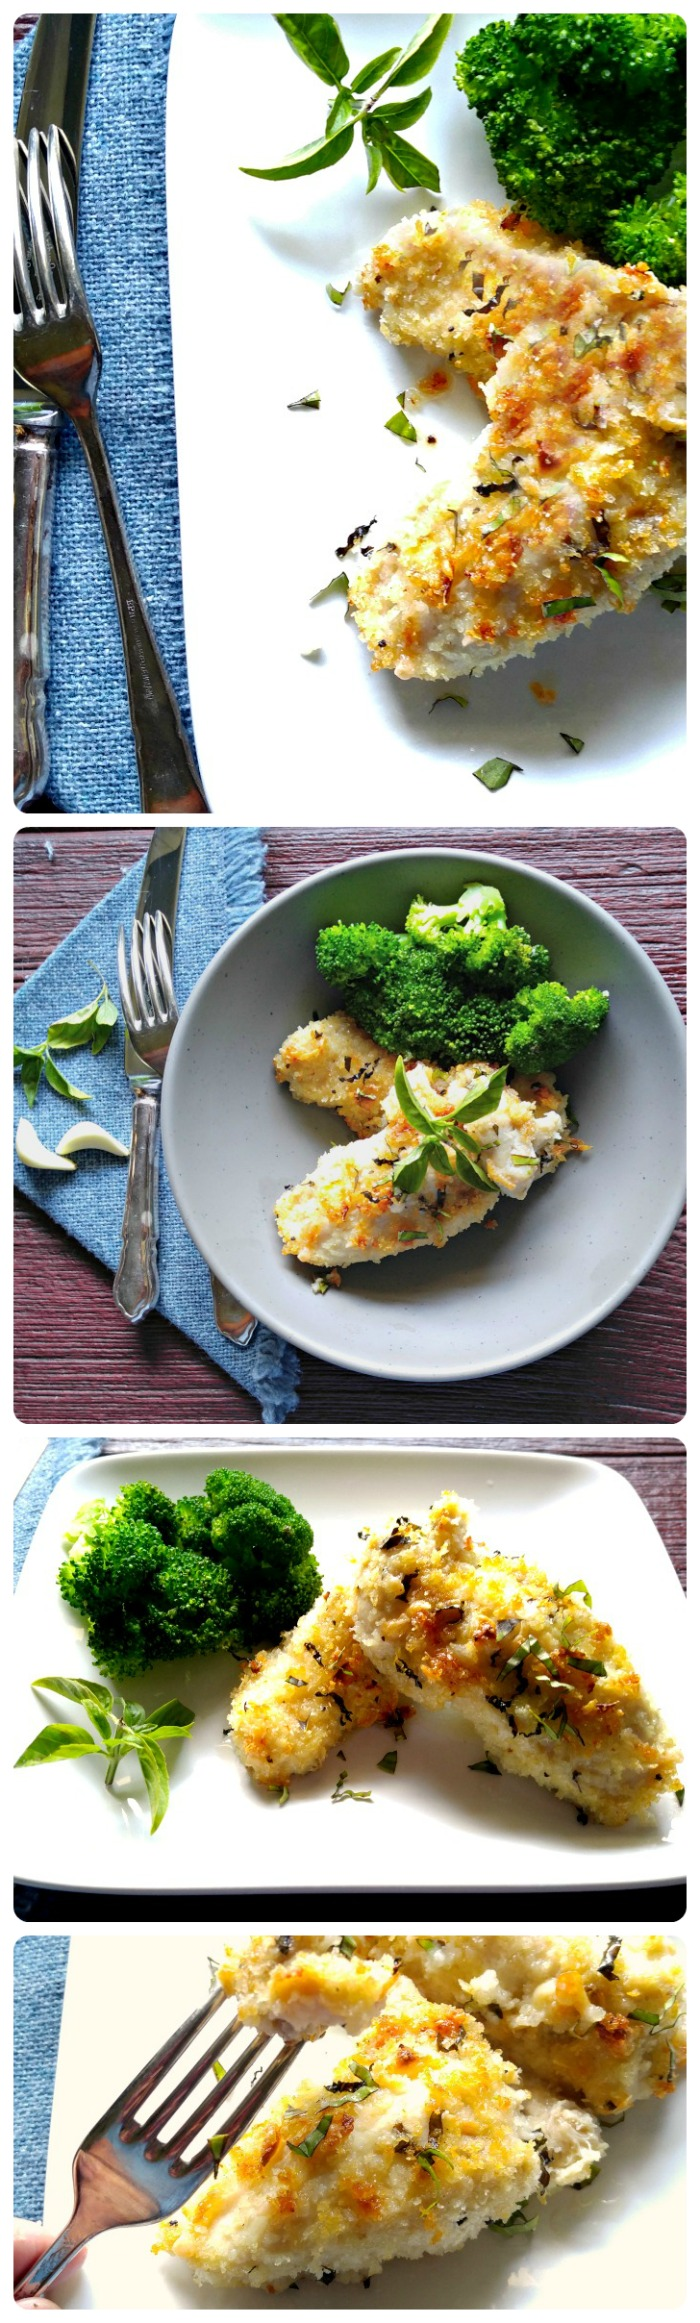 This Oven baked Parmesan chicken is lighter than the normal version but right up there in the taste department! recipesjust4u.com